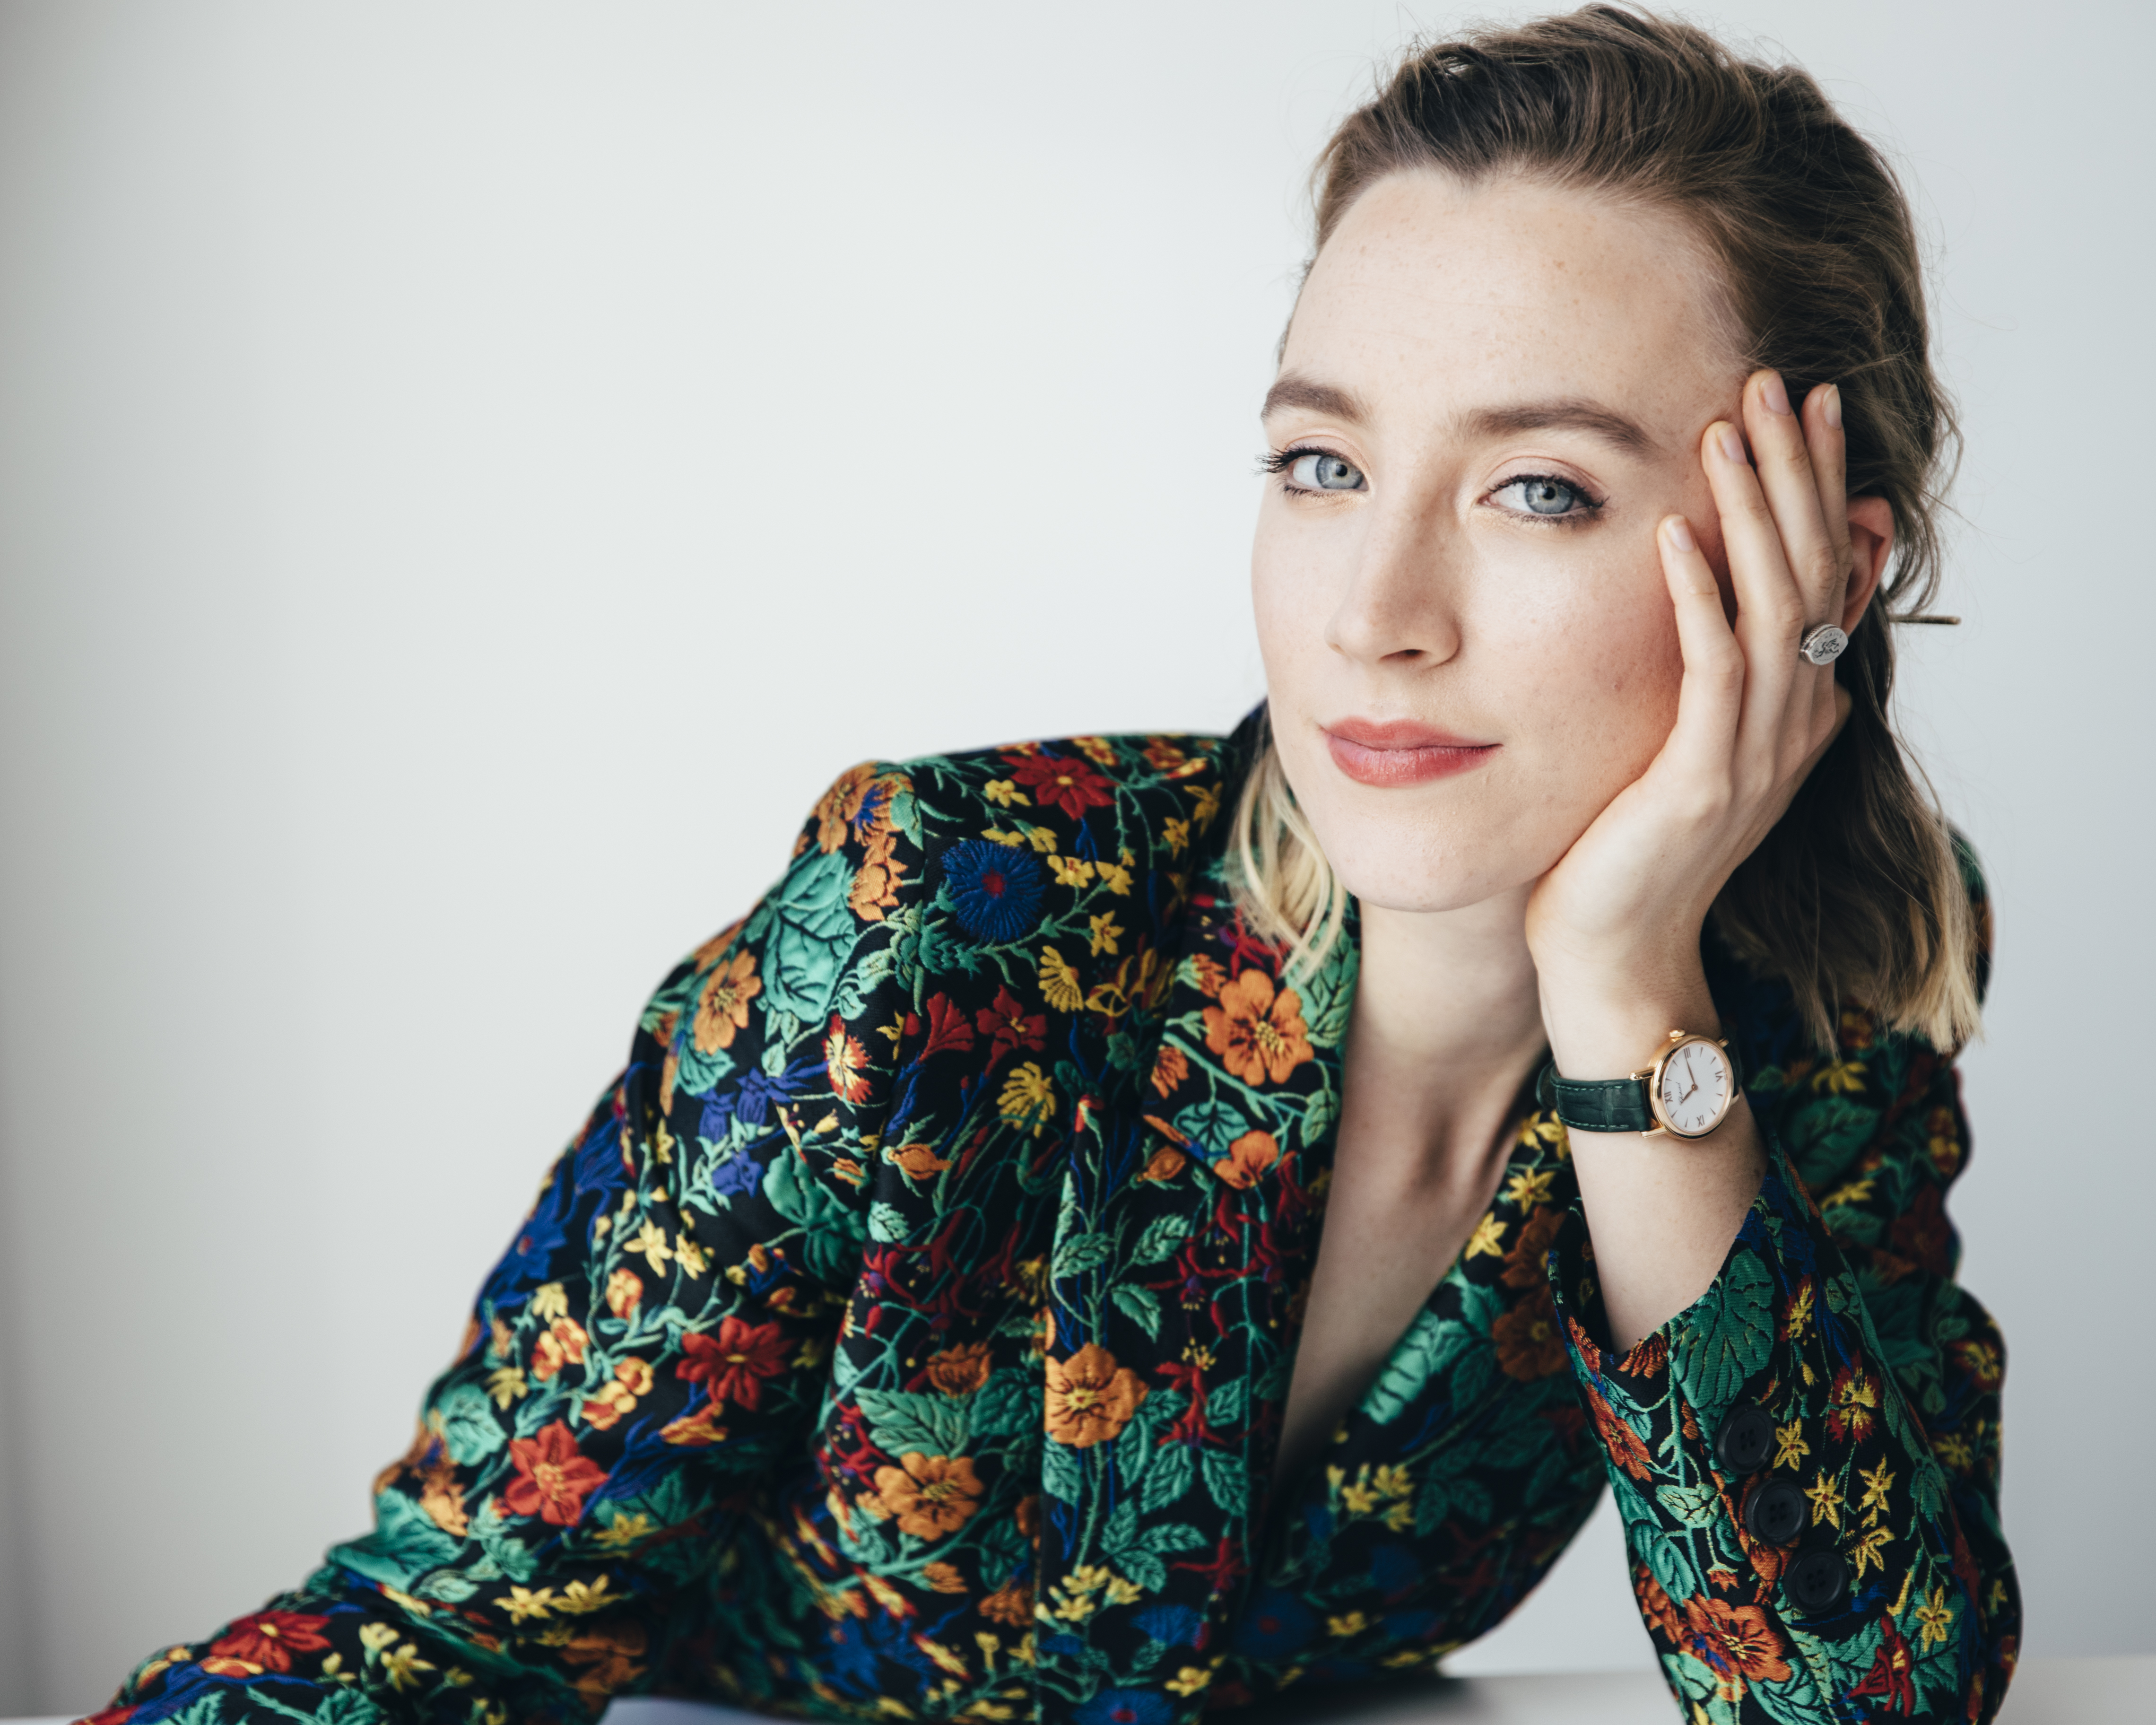 For Ronan, 'Queen of Scots' Role a Chance to Grow | Voice of America